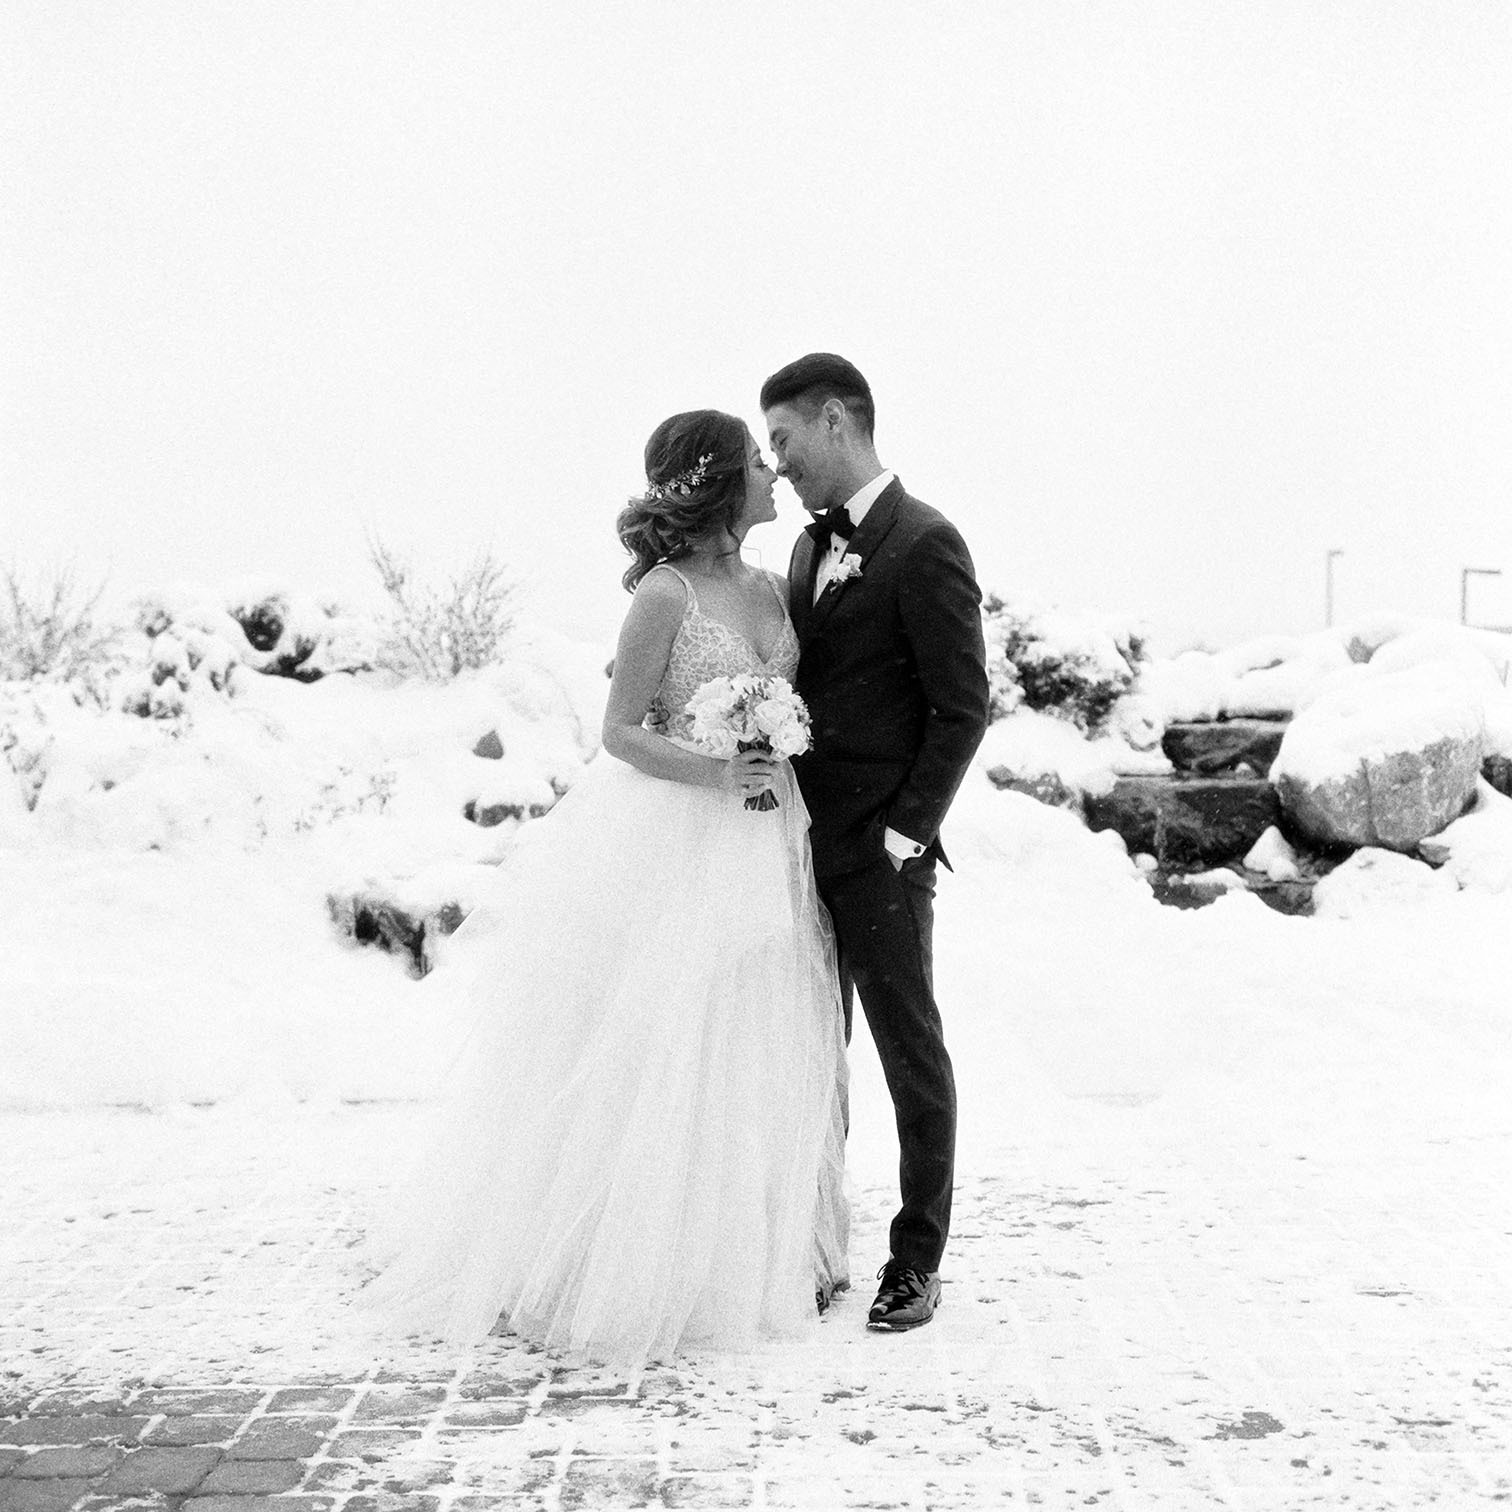 Colorado Wedding Photography, Snowy Bride and Groom Portraits, Denver Weddings